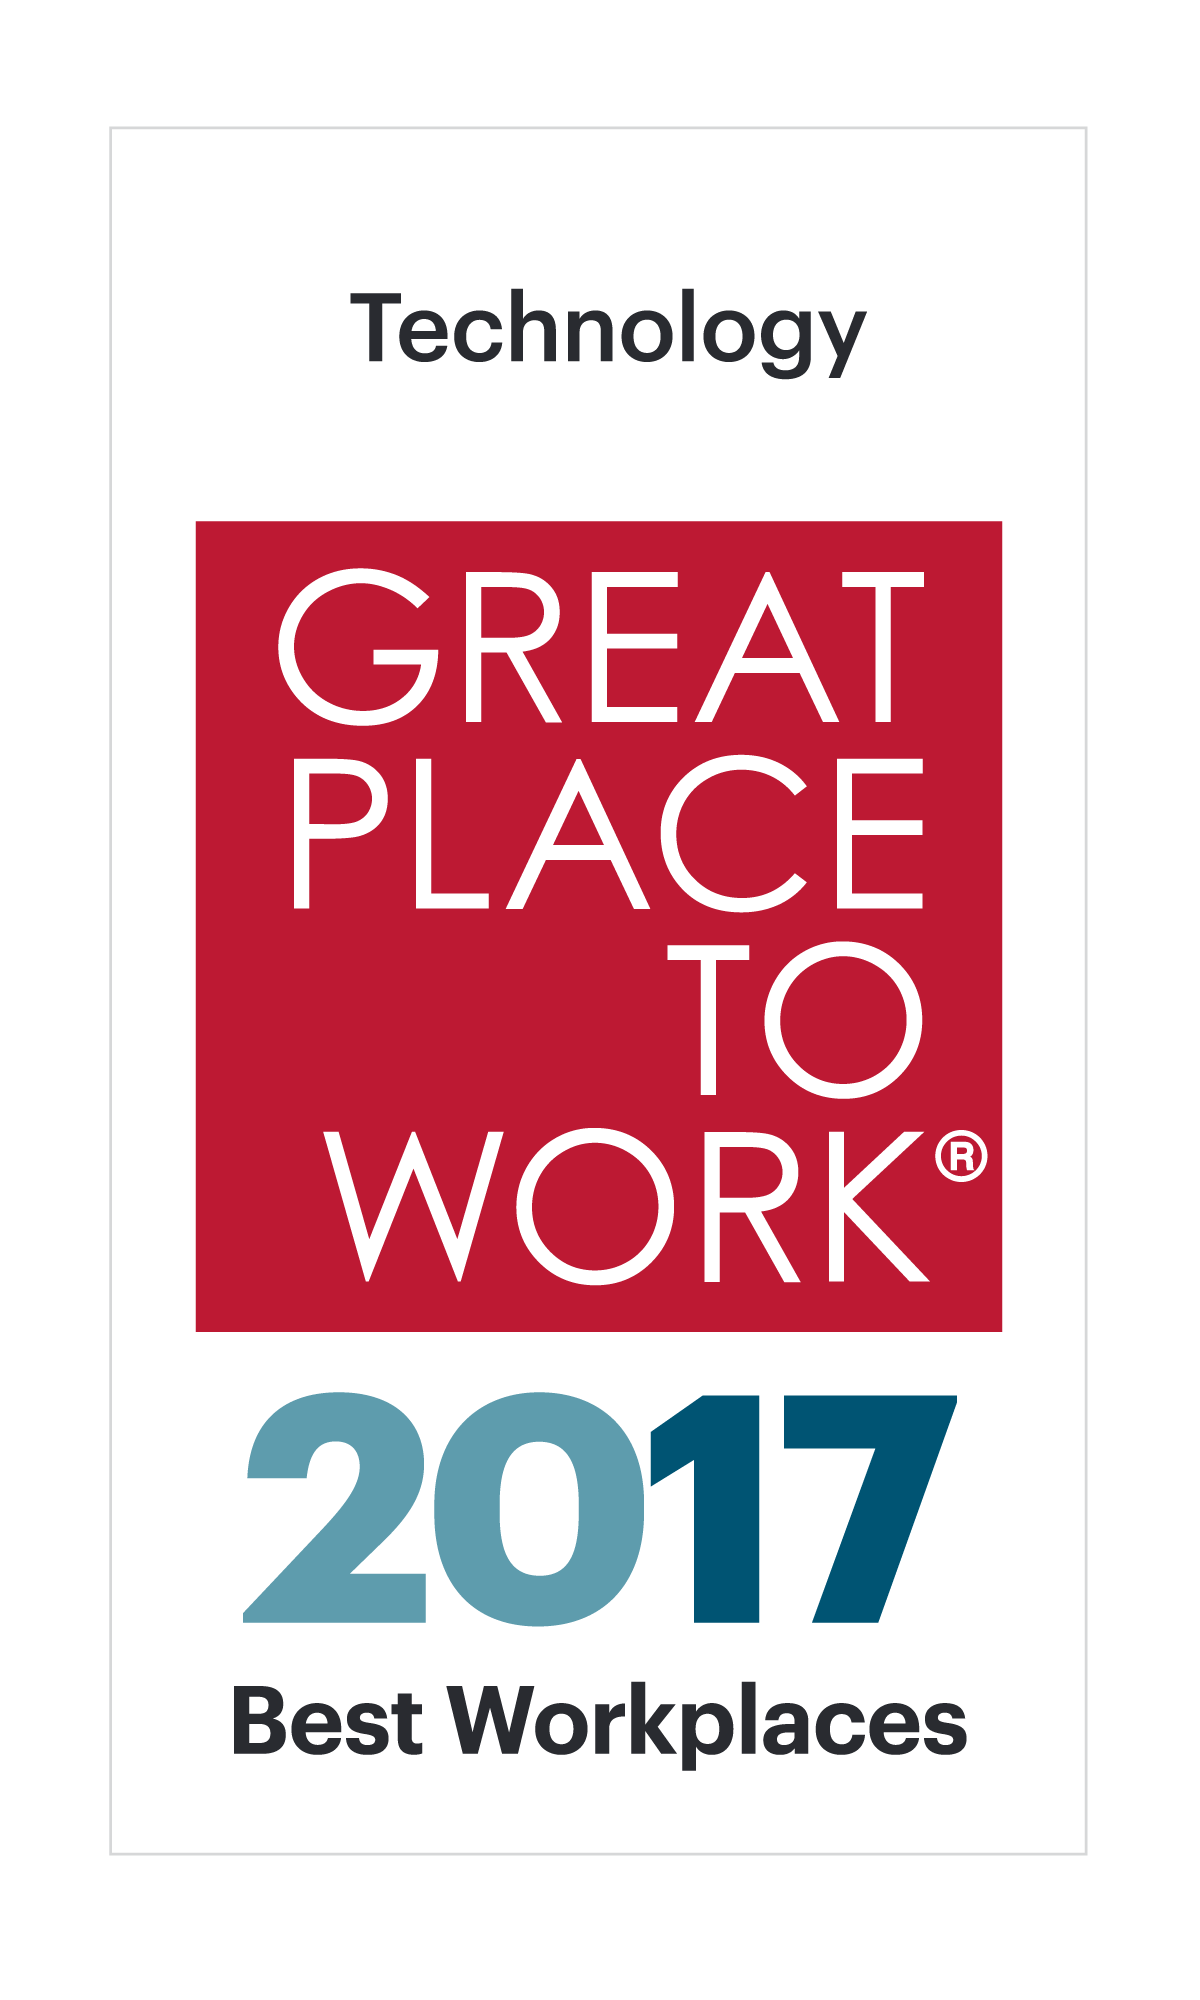 Best Workplaces in Technology 2017 Image